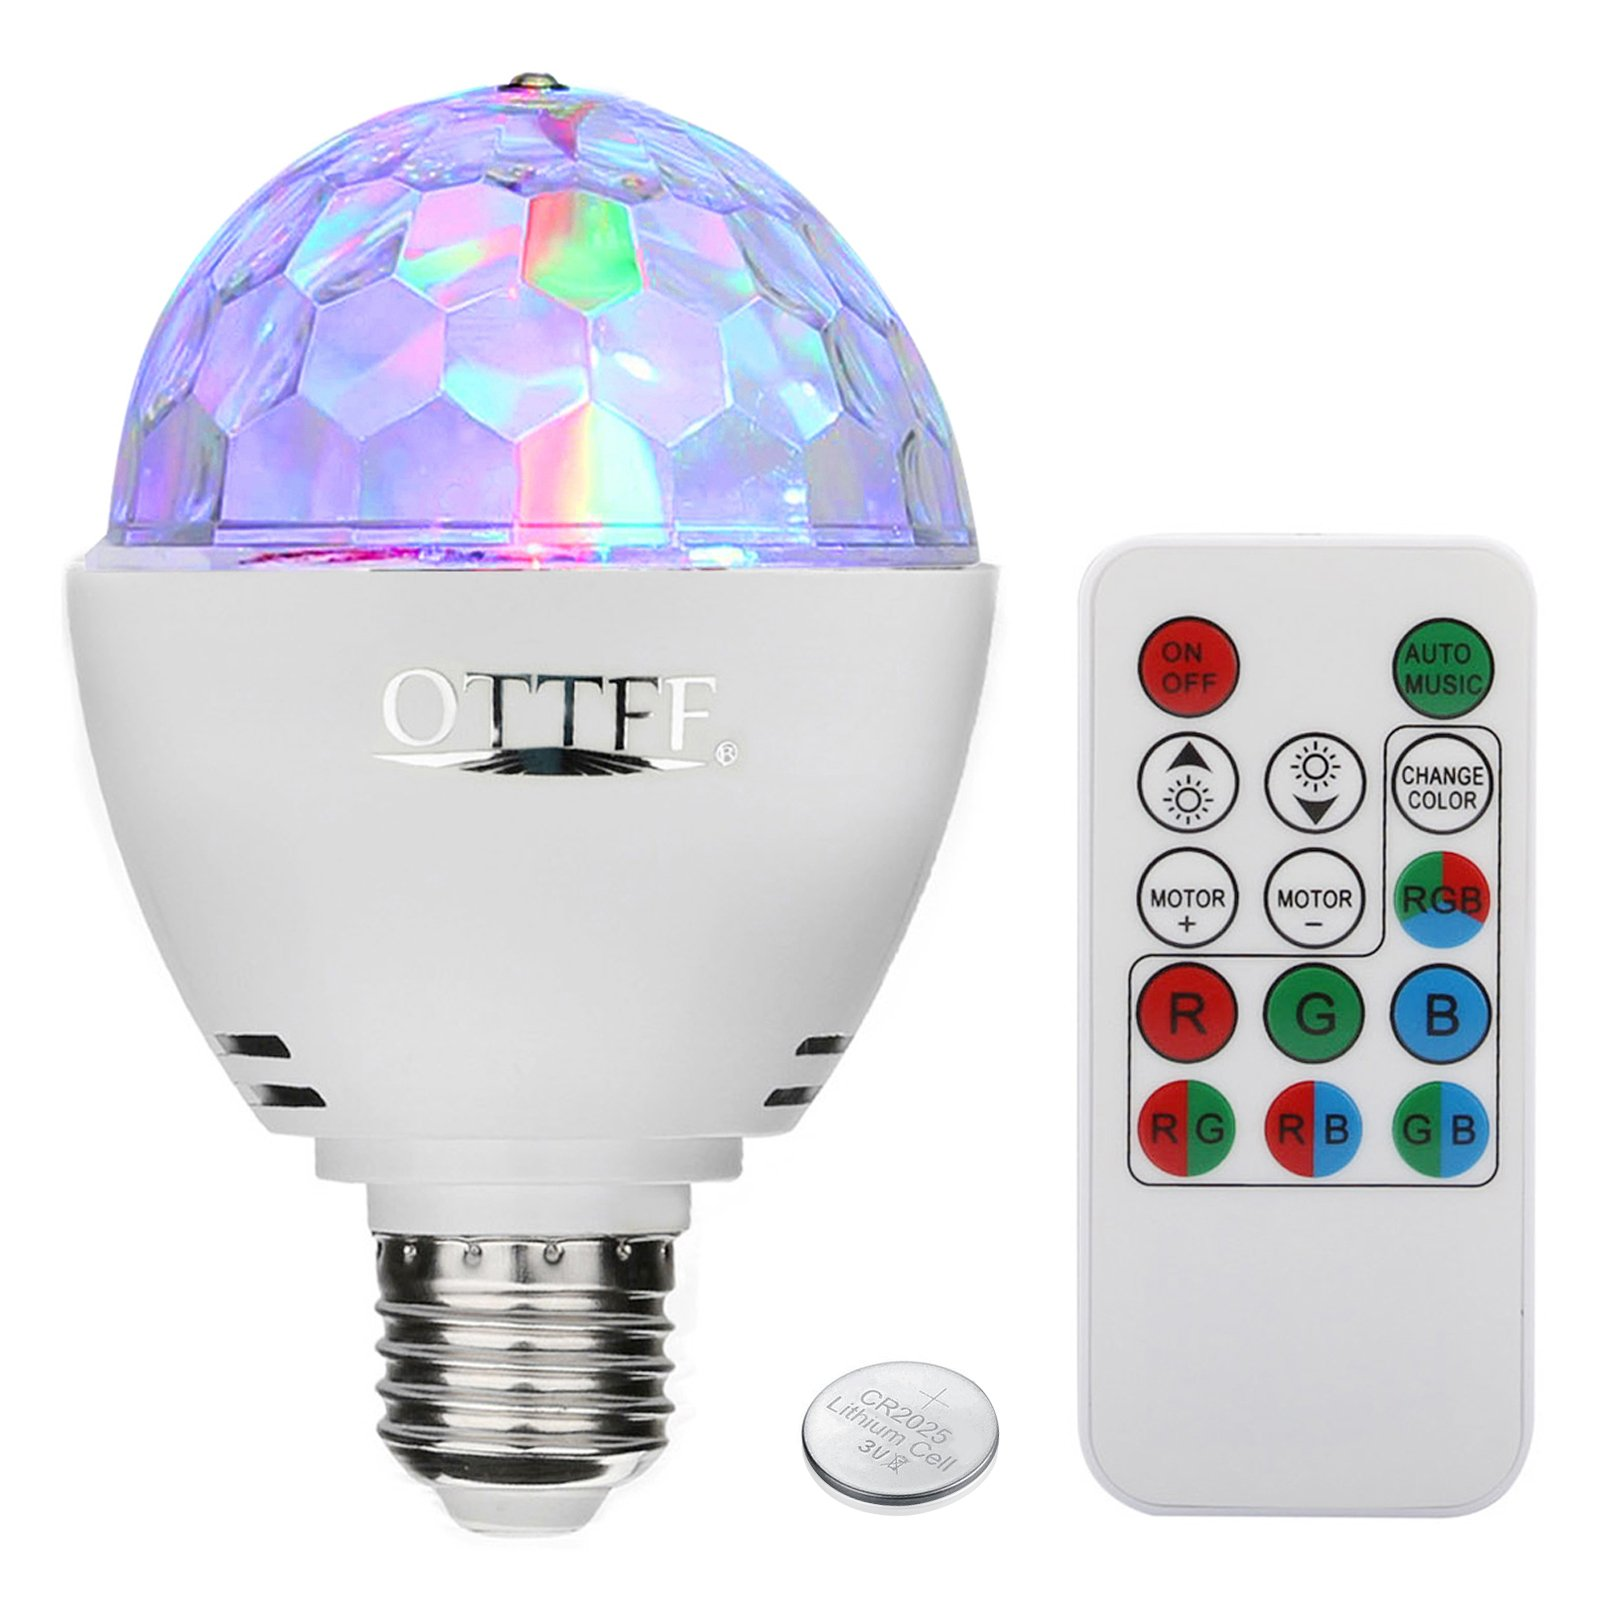 OTTFF 3W E27 Disco Ball Lamp RGB Rotating LED Sound Activated Strobe Lights Party Bulb Stage Light for Family Parties,Birthday,Desk Lamp with Remote Control by OTTFF (Image #2)